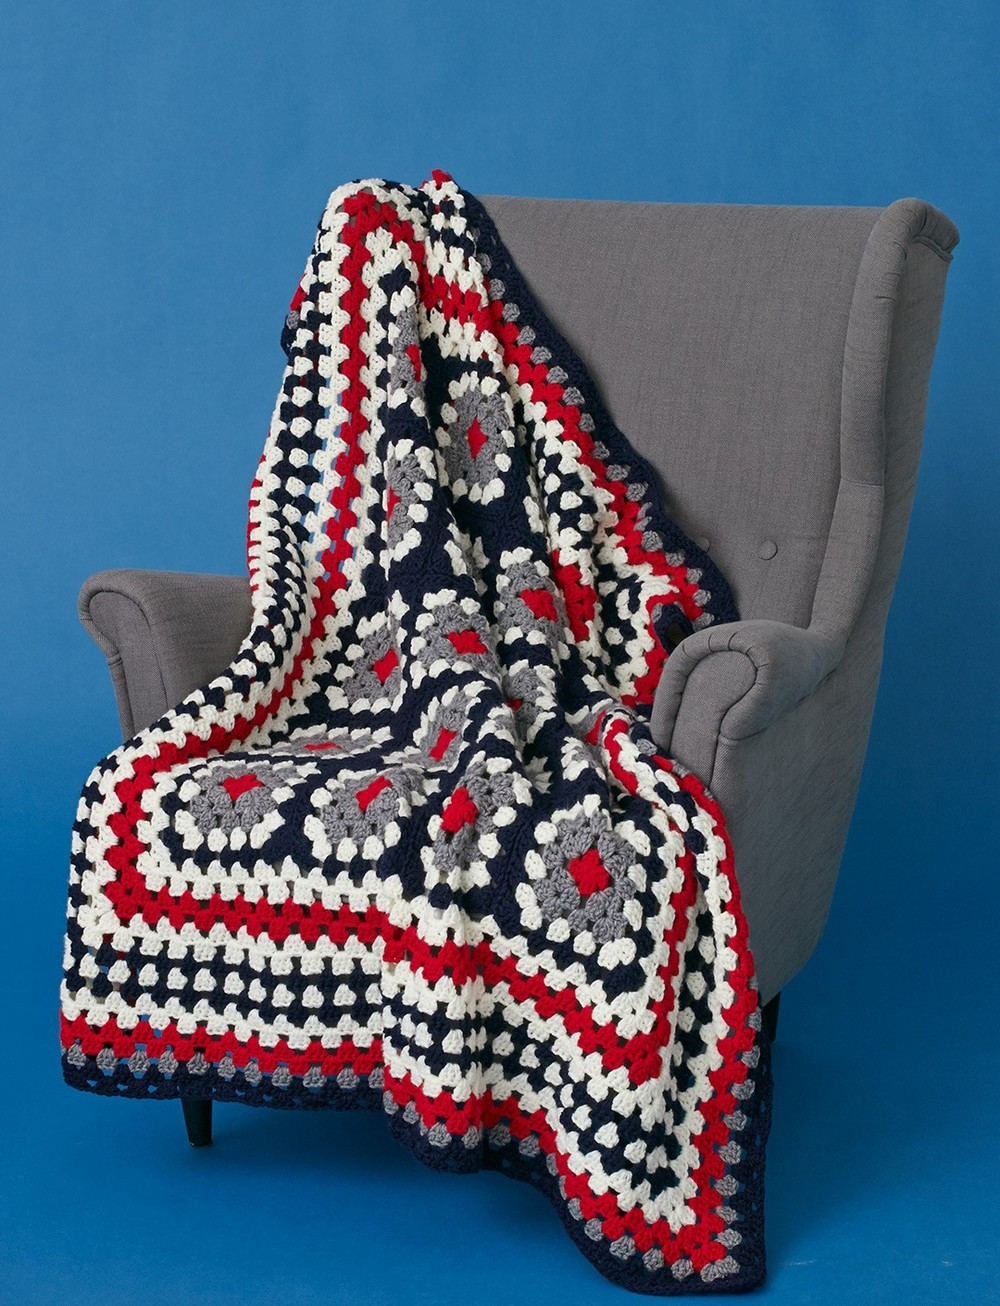 Granny Square Afghan Fresh Patriotic Crochet Granny Squares Throw Of Adorable 50 Pics Granny Square Afghan